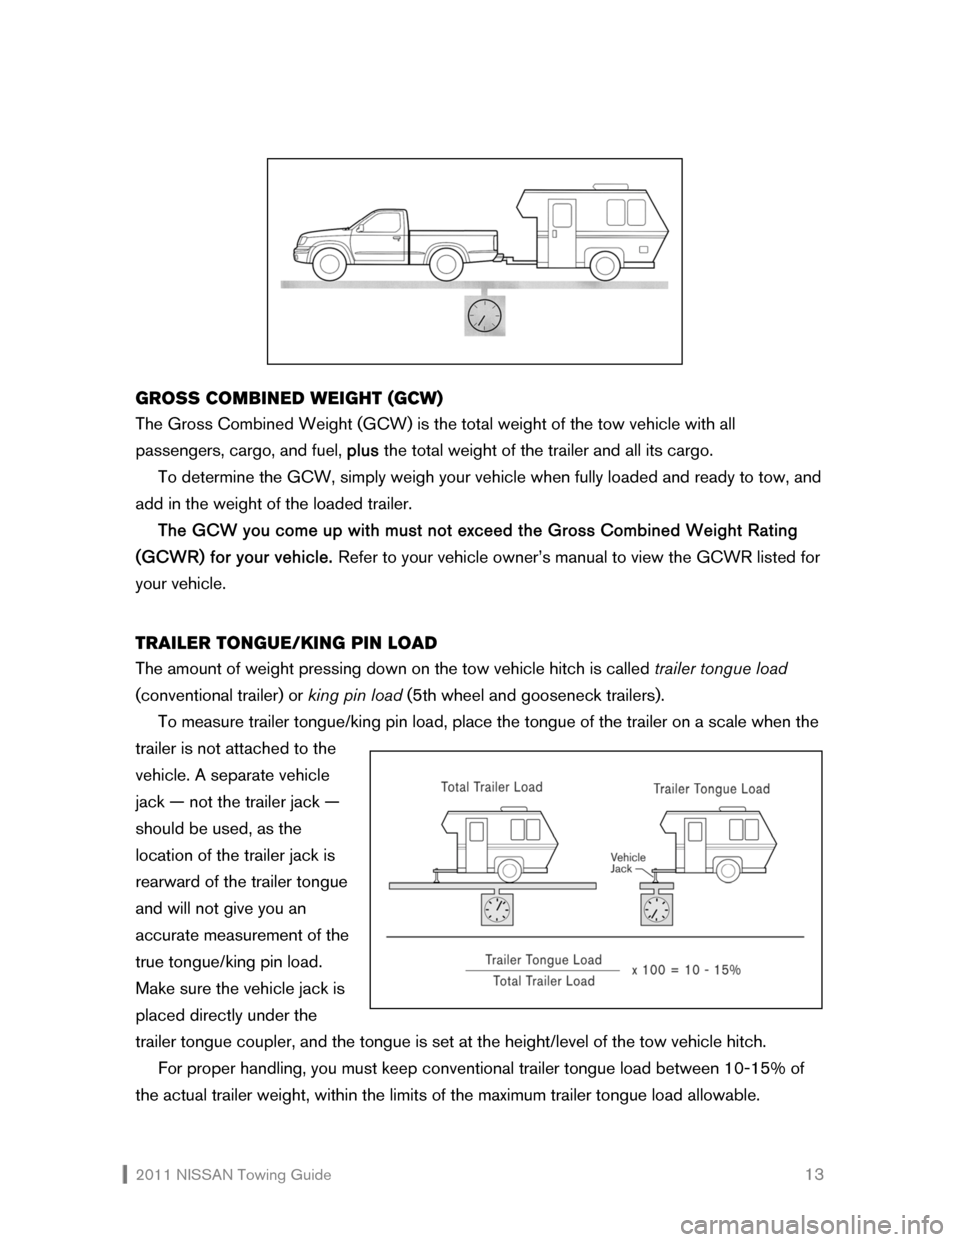 NISSAN SENTRA 2011 B16 / 6.G Towing Guide, Page 14